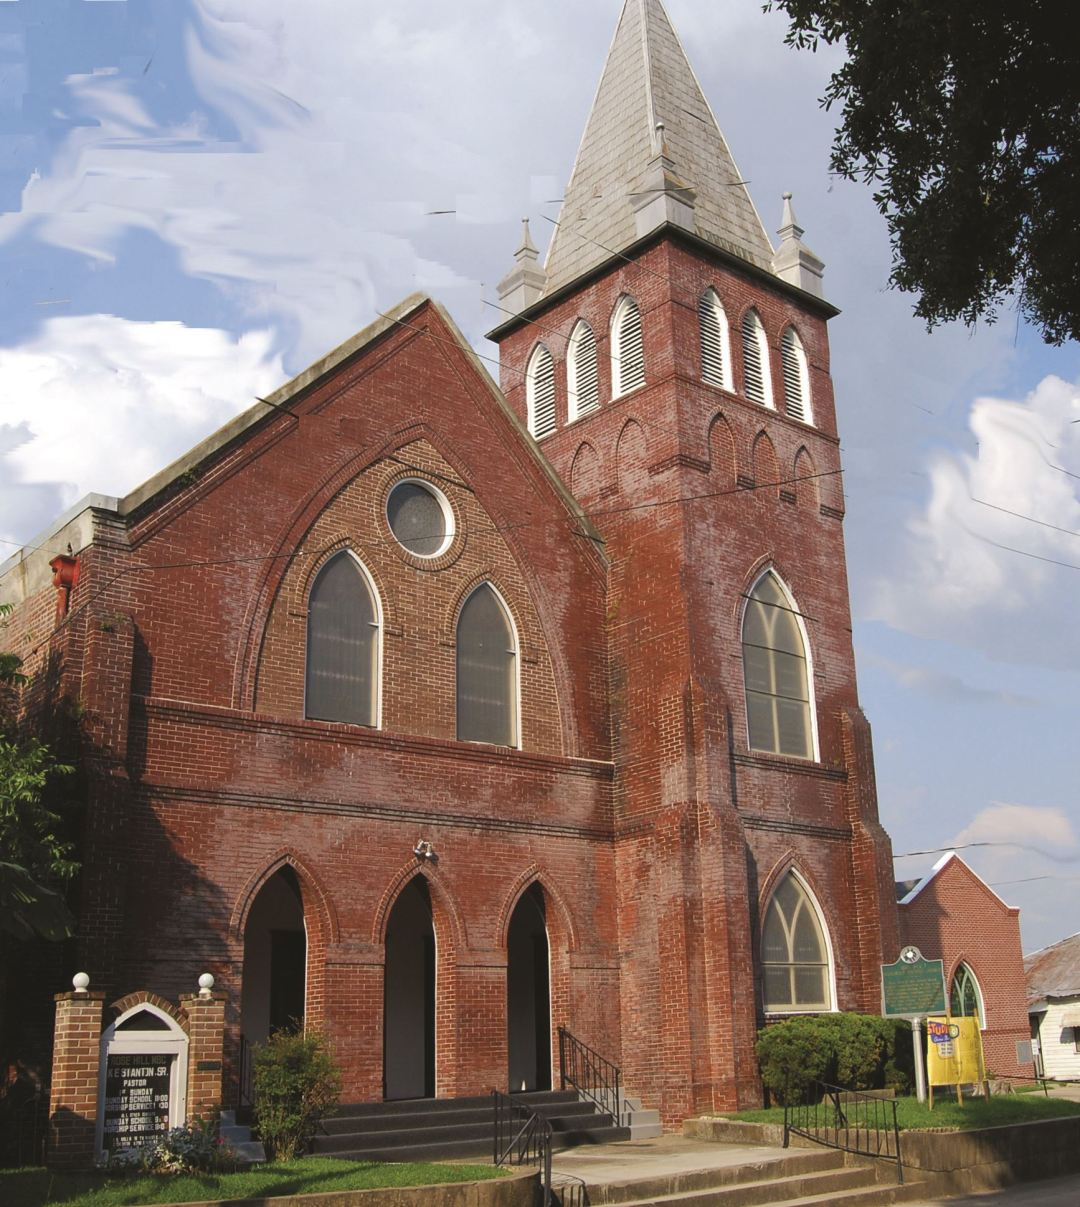 rose_hill_mb_church New Year's Eve Travel: Historic Black Churches to Visit for Watch Night Celebrations